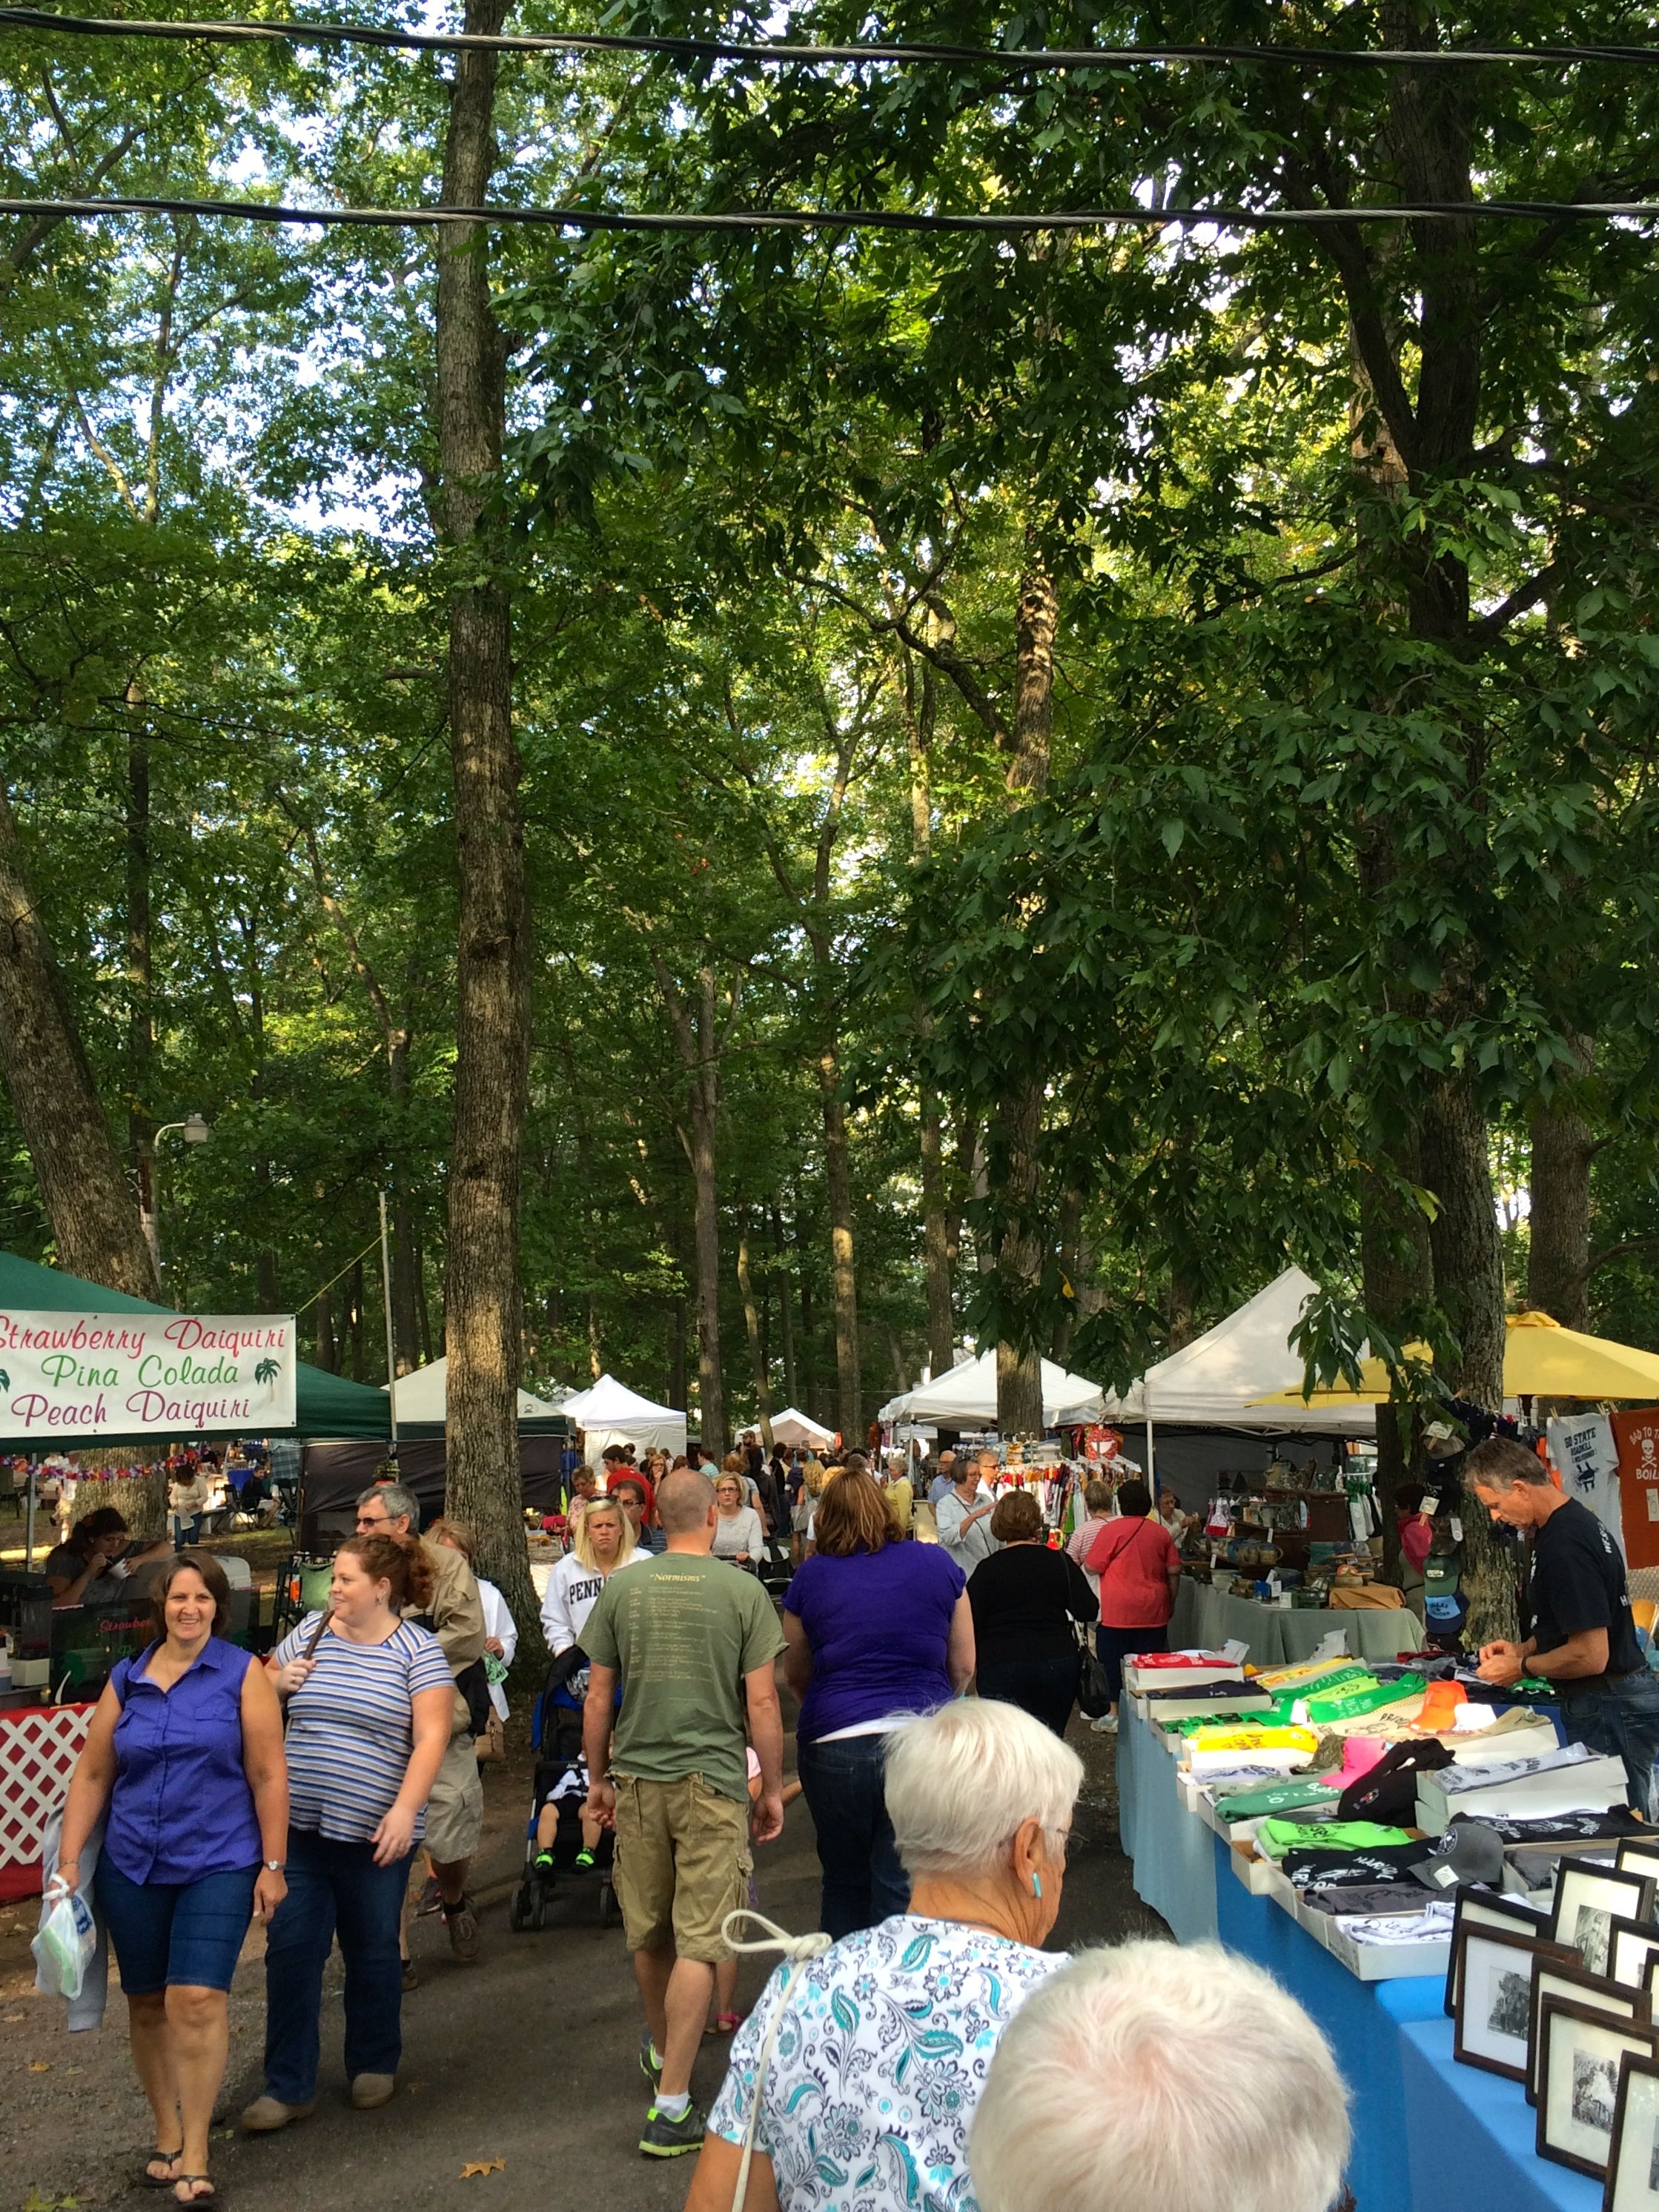 Crafts under the trees